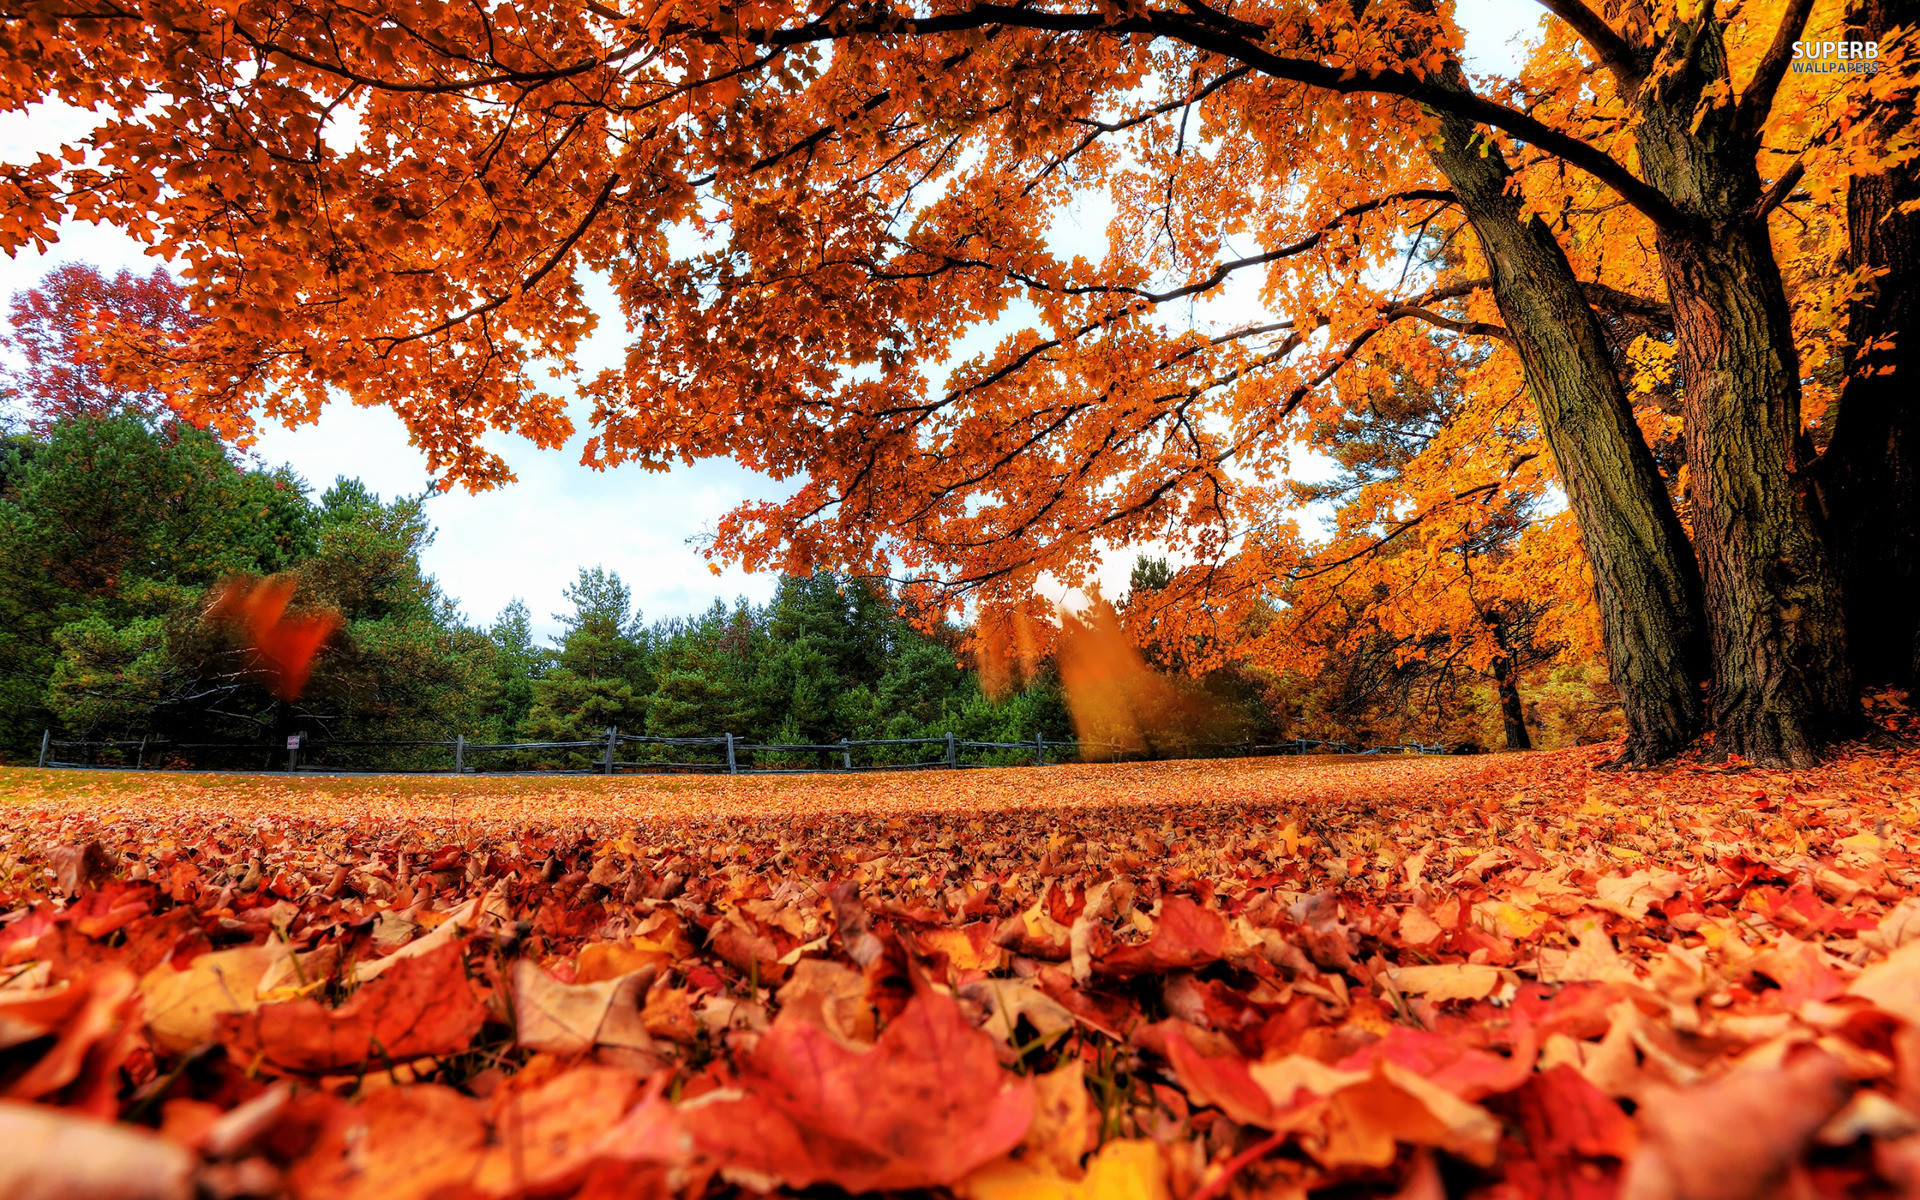 Free Download 71 Desktop Fall Wallpapers On Wallpaperplay 1920x1200 For Your Desktop Mobile Tablet Explore 70 Fall Desktop Wallpapers Free Desktop Wallpaper Hd Fall Wallpaper For Desktop Fall Wallpapers For Windows 7